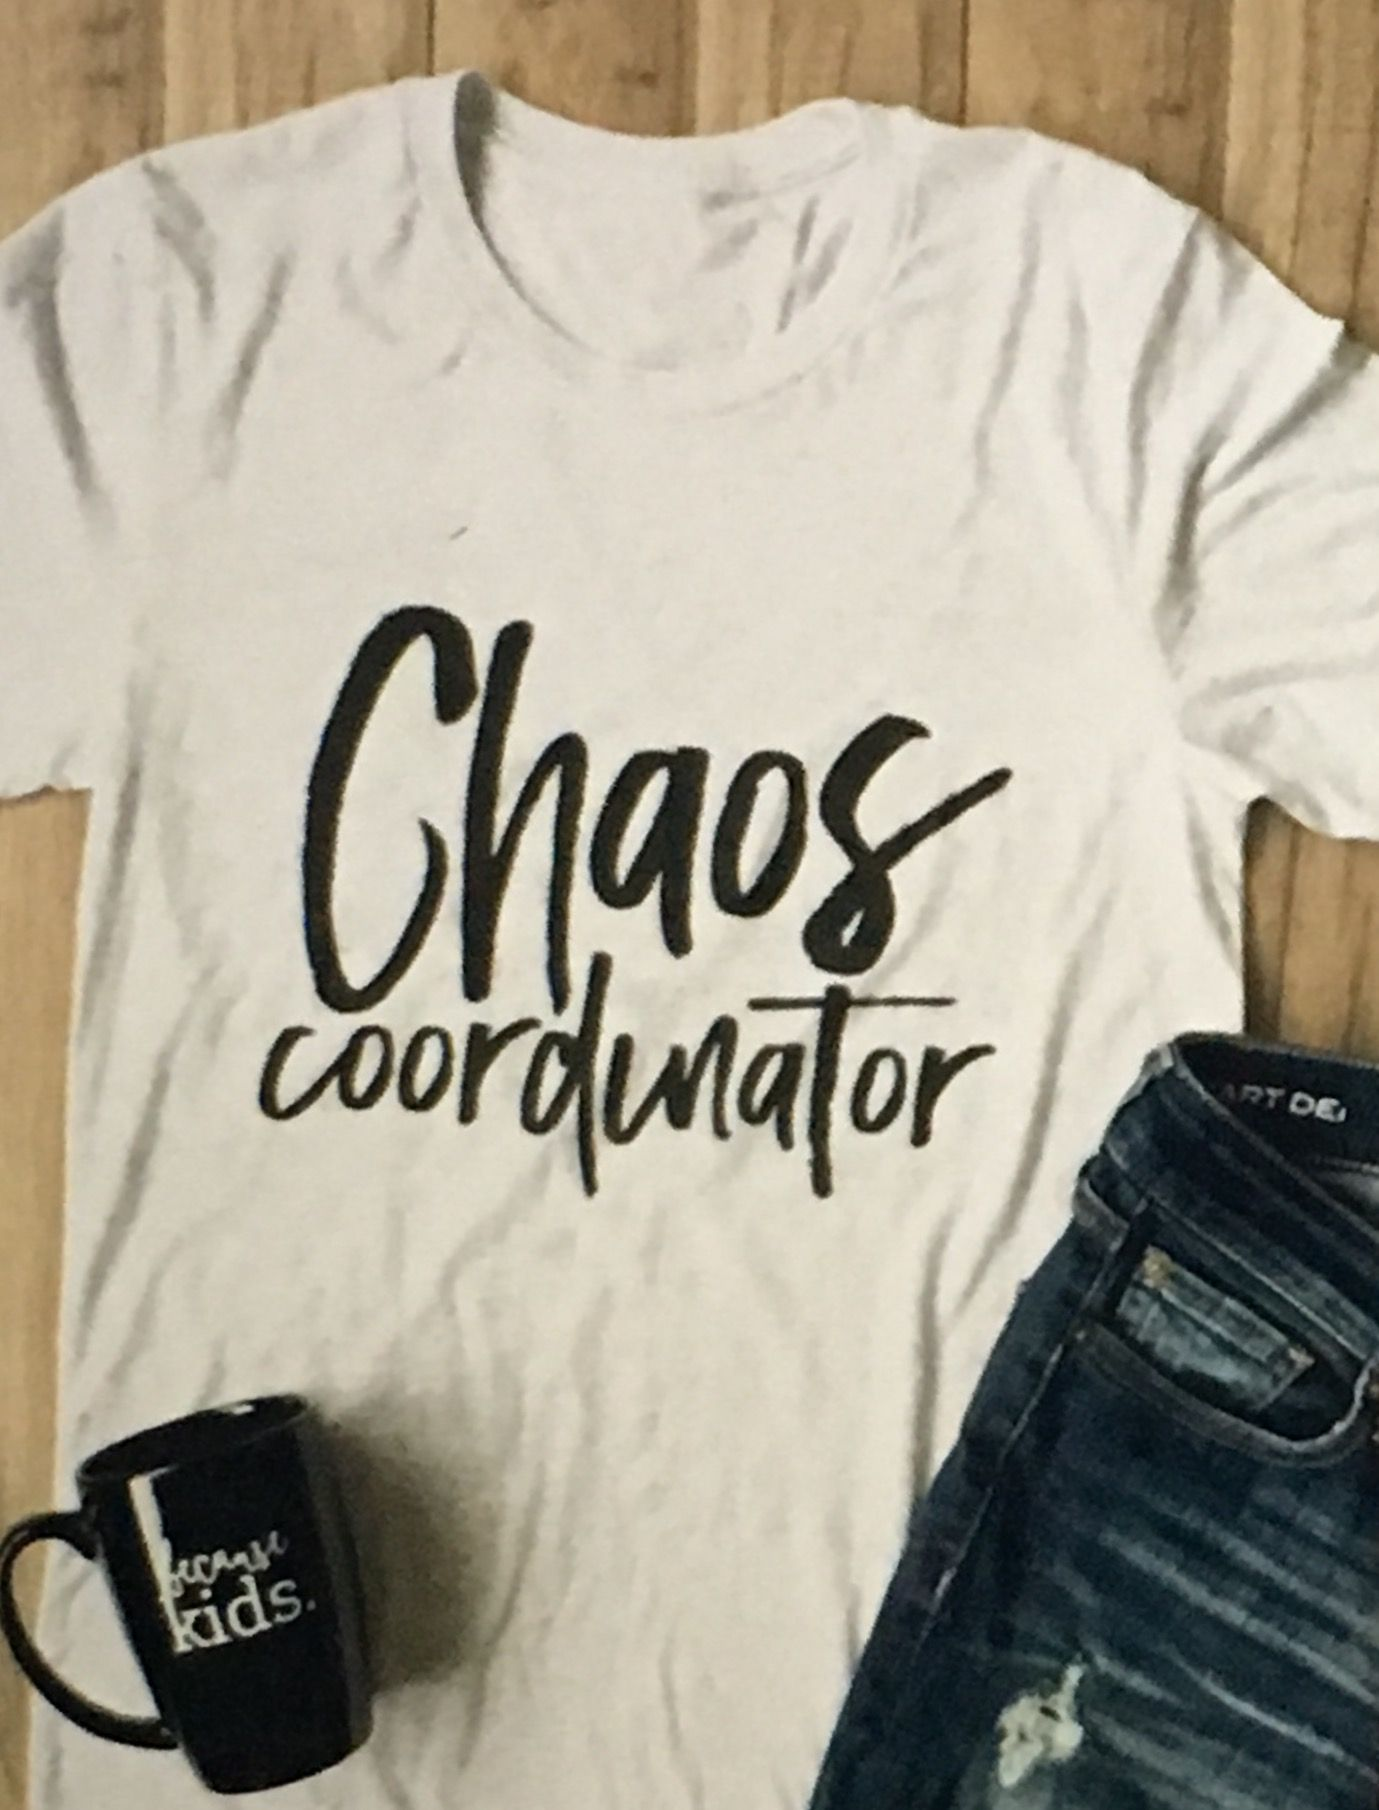 Chaos Coordinator (Size Large) Shirt designs, Cool t